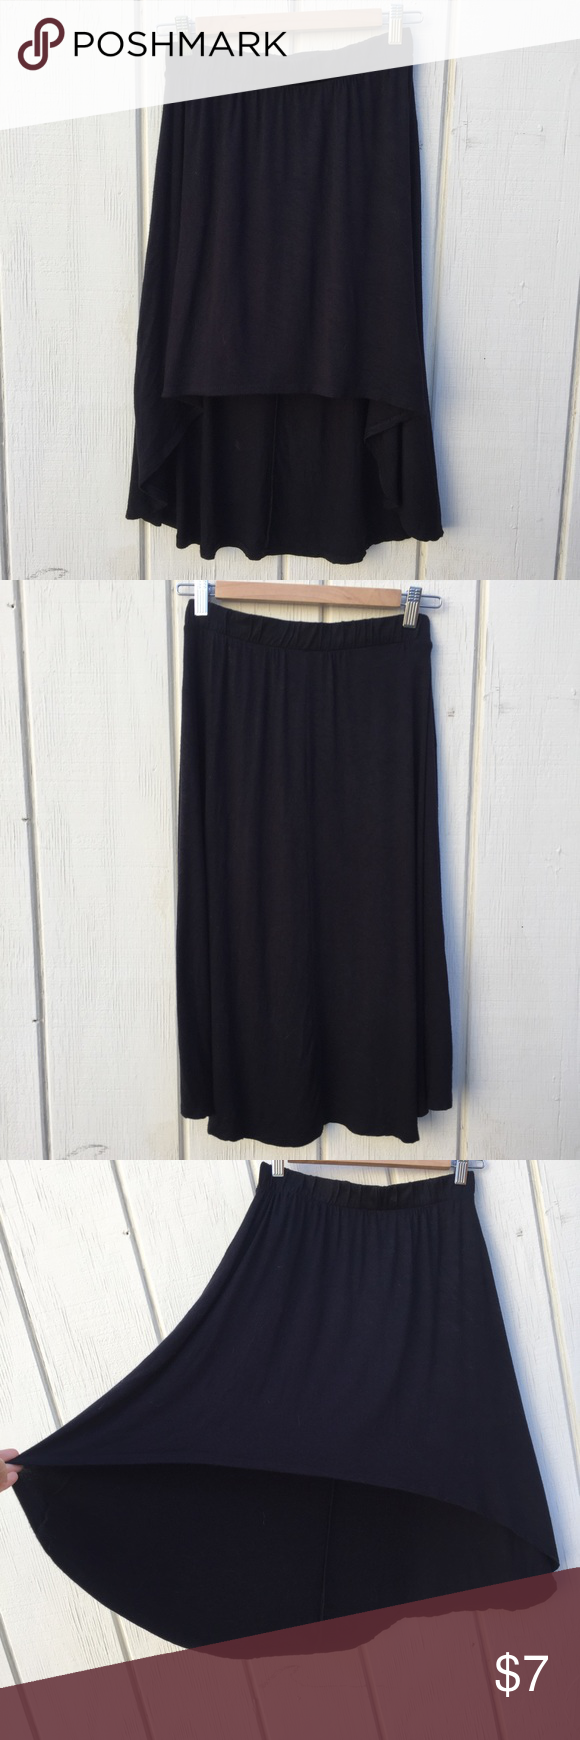 F21 high low skirt Stretchy jersey high low skirt. Elastic waist. No lining. You can wear this on your waist or lower. Front sits above the knee and the back hits mid calf. Worn handful times, but still in great condition! Name tag and size tag are cut off, but it's size S. if you wear M, it'll still fit, but might feel slightly tight around the waist. Forever 21 Skirts High Low